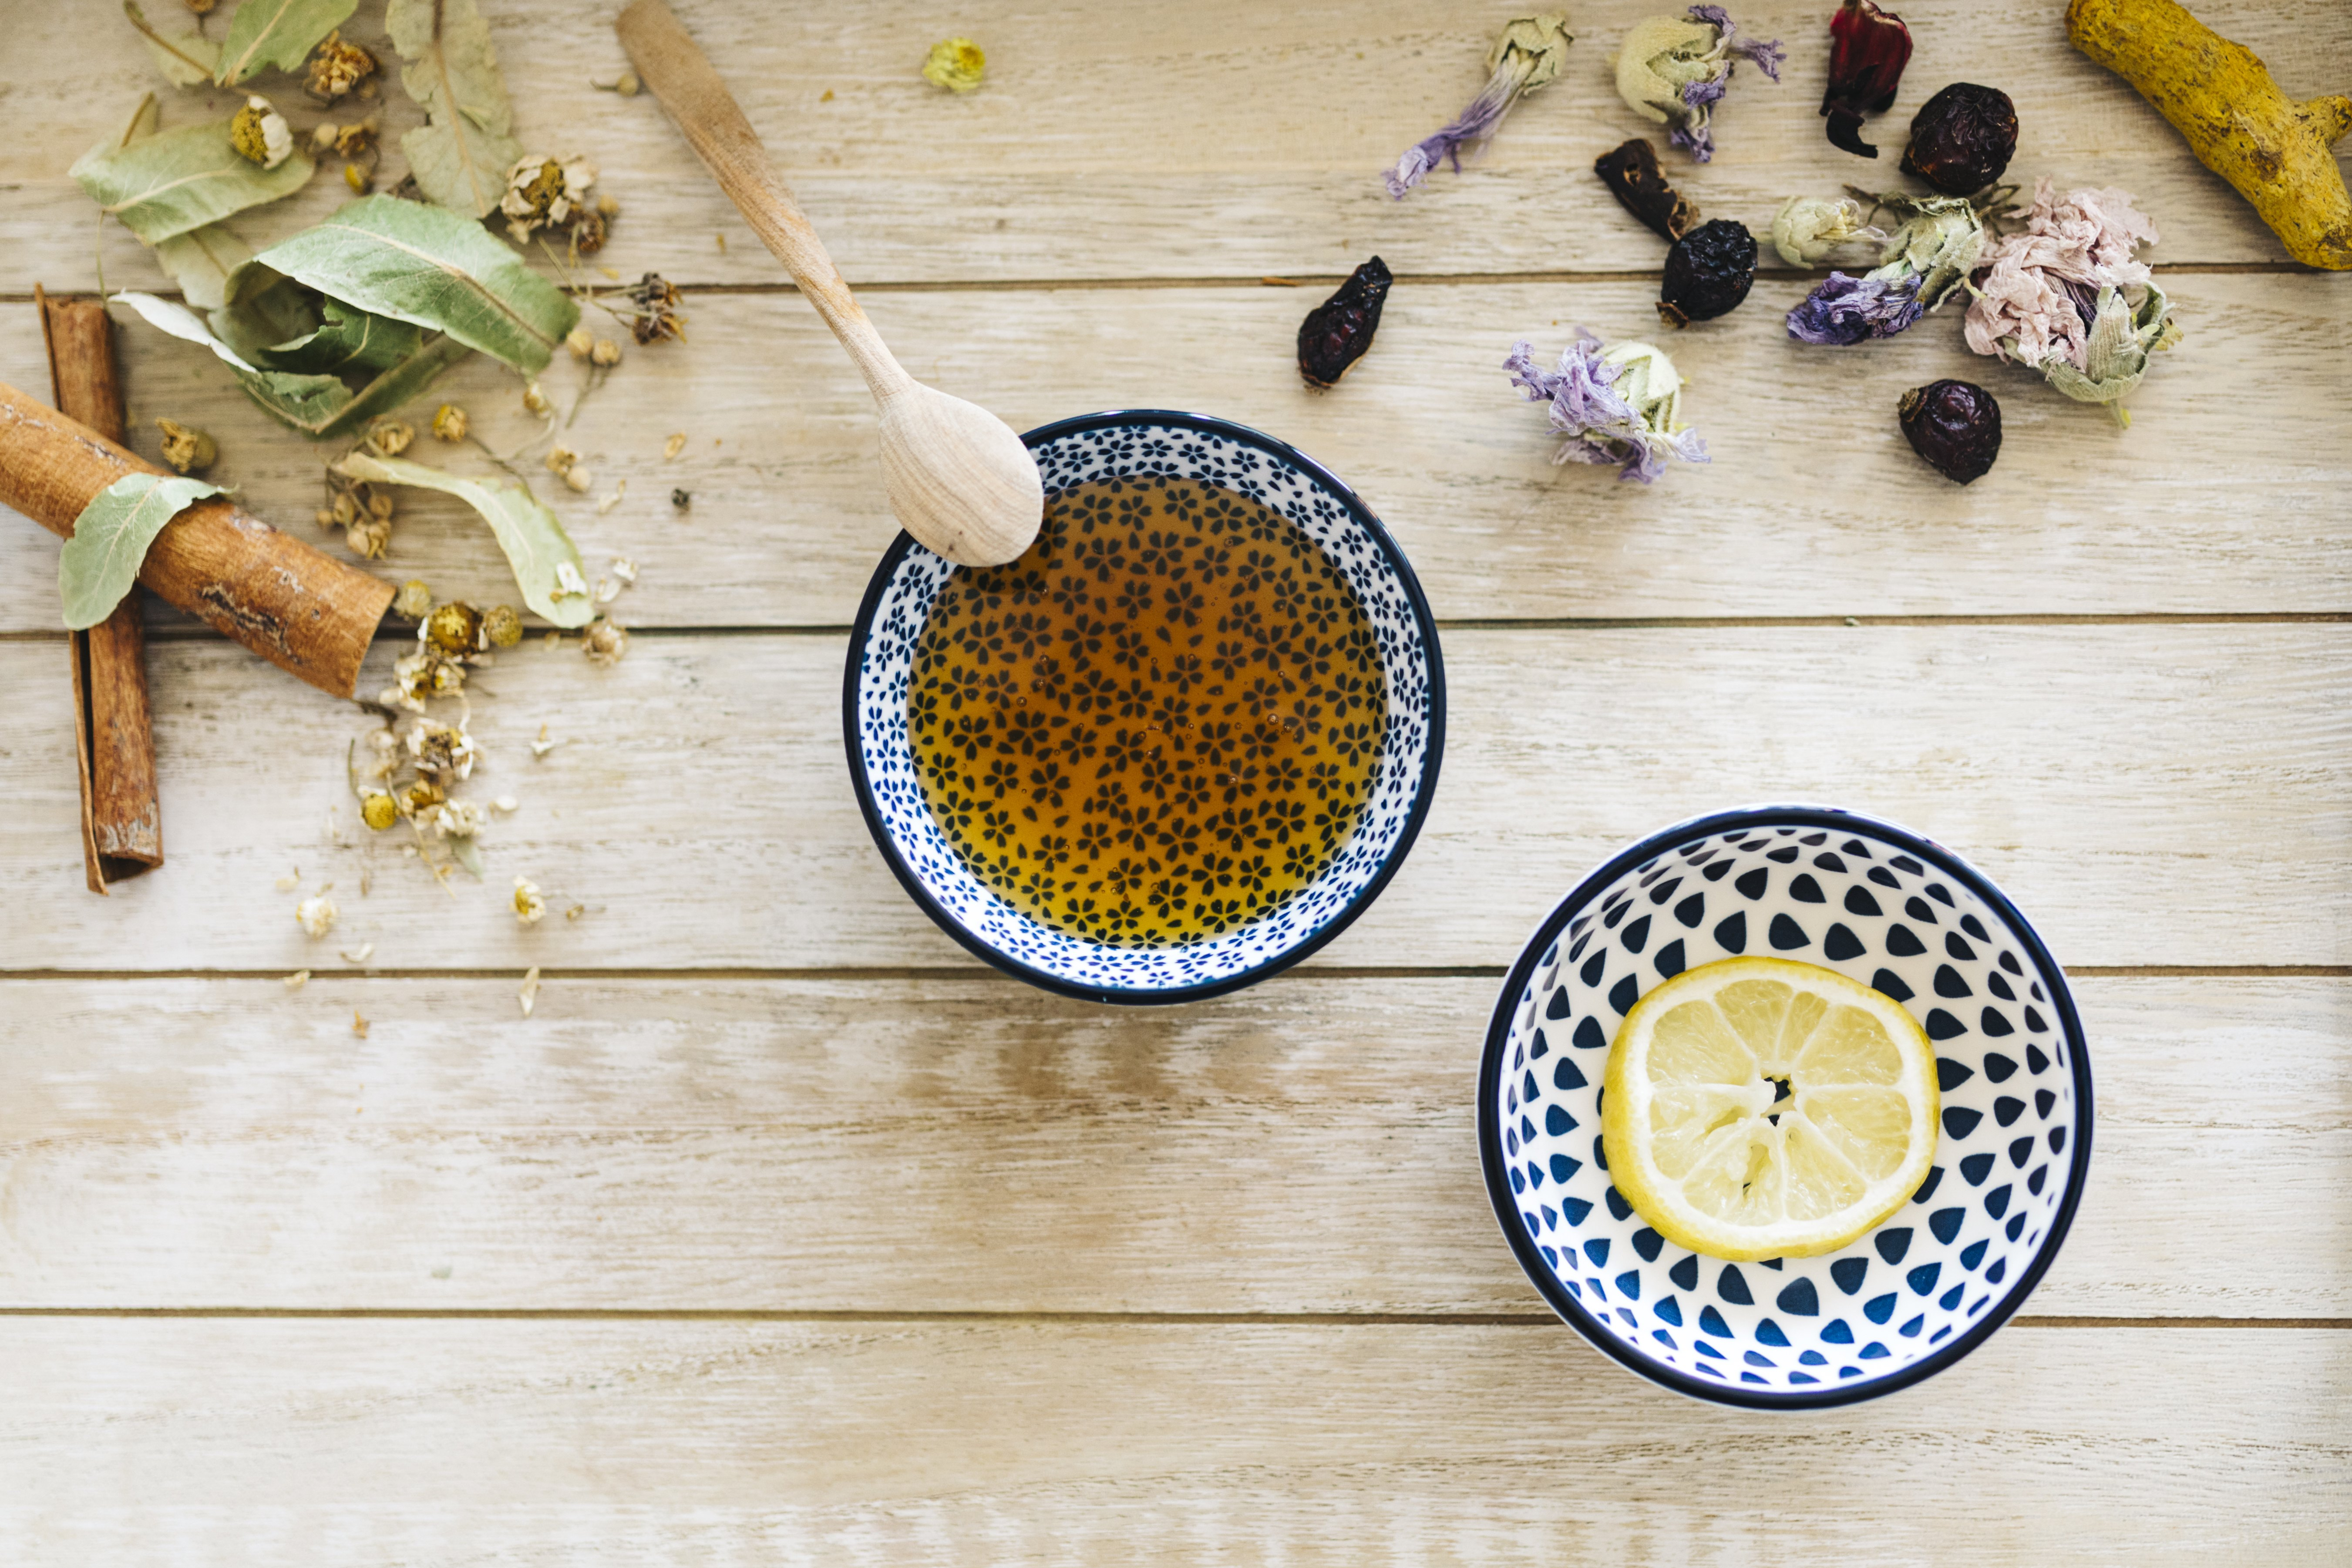 Can Drinking Tea With Honey and Lemon Help You Get Over a Cold?